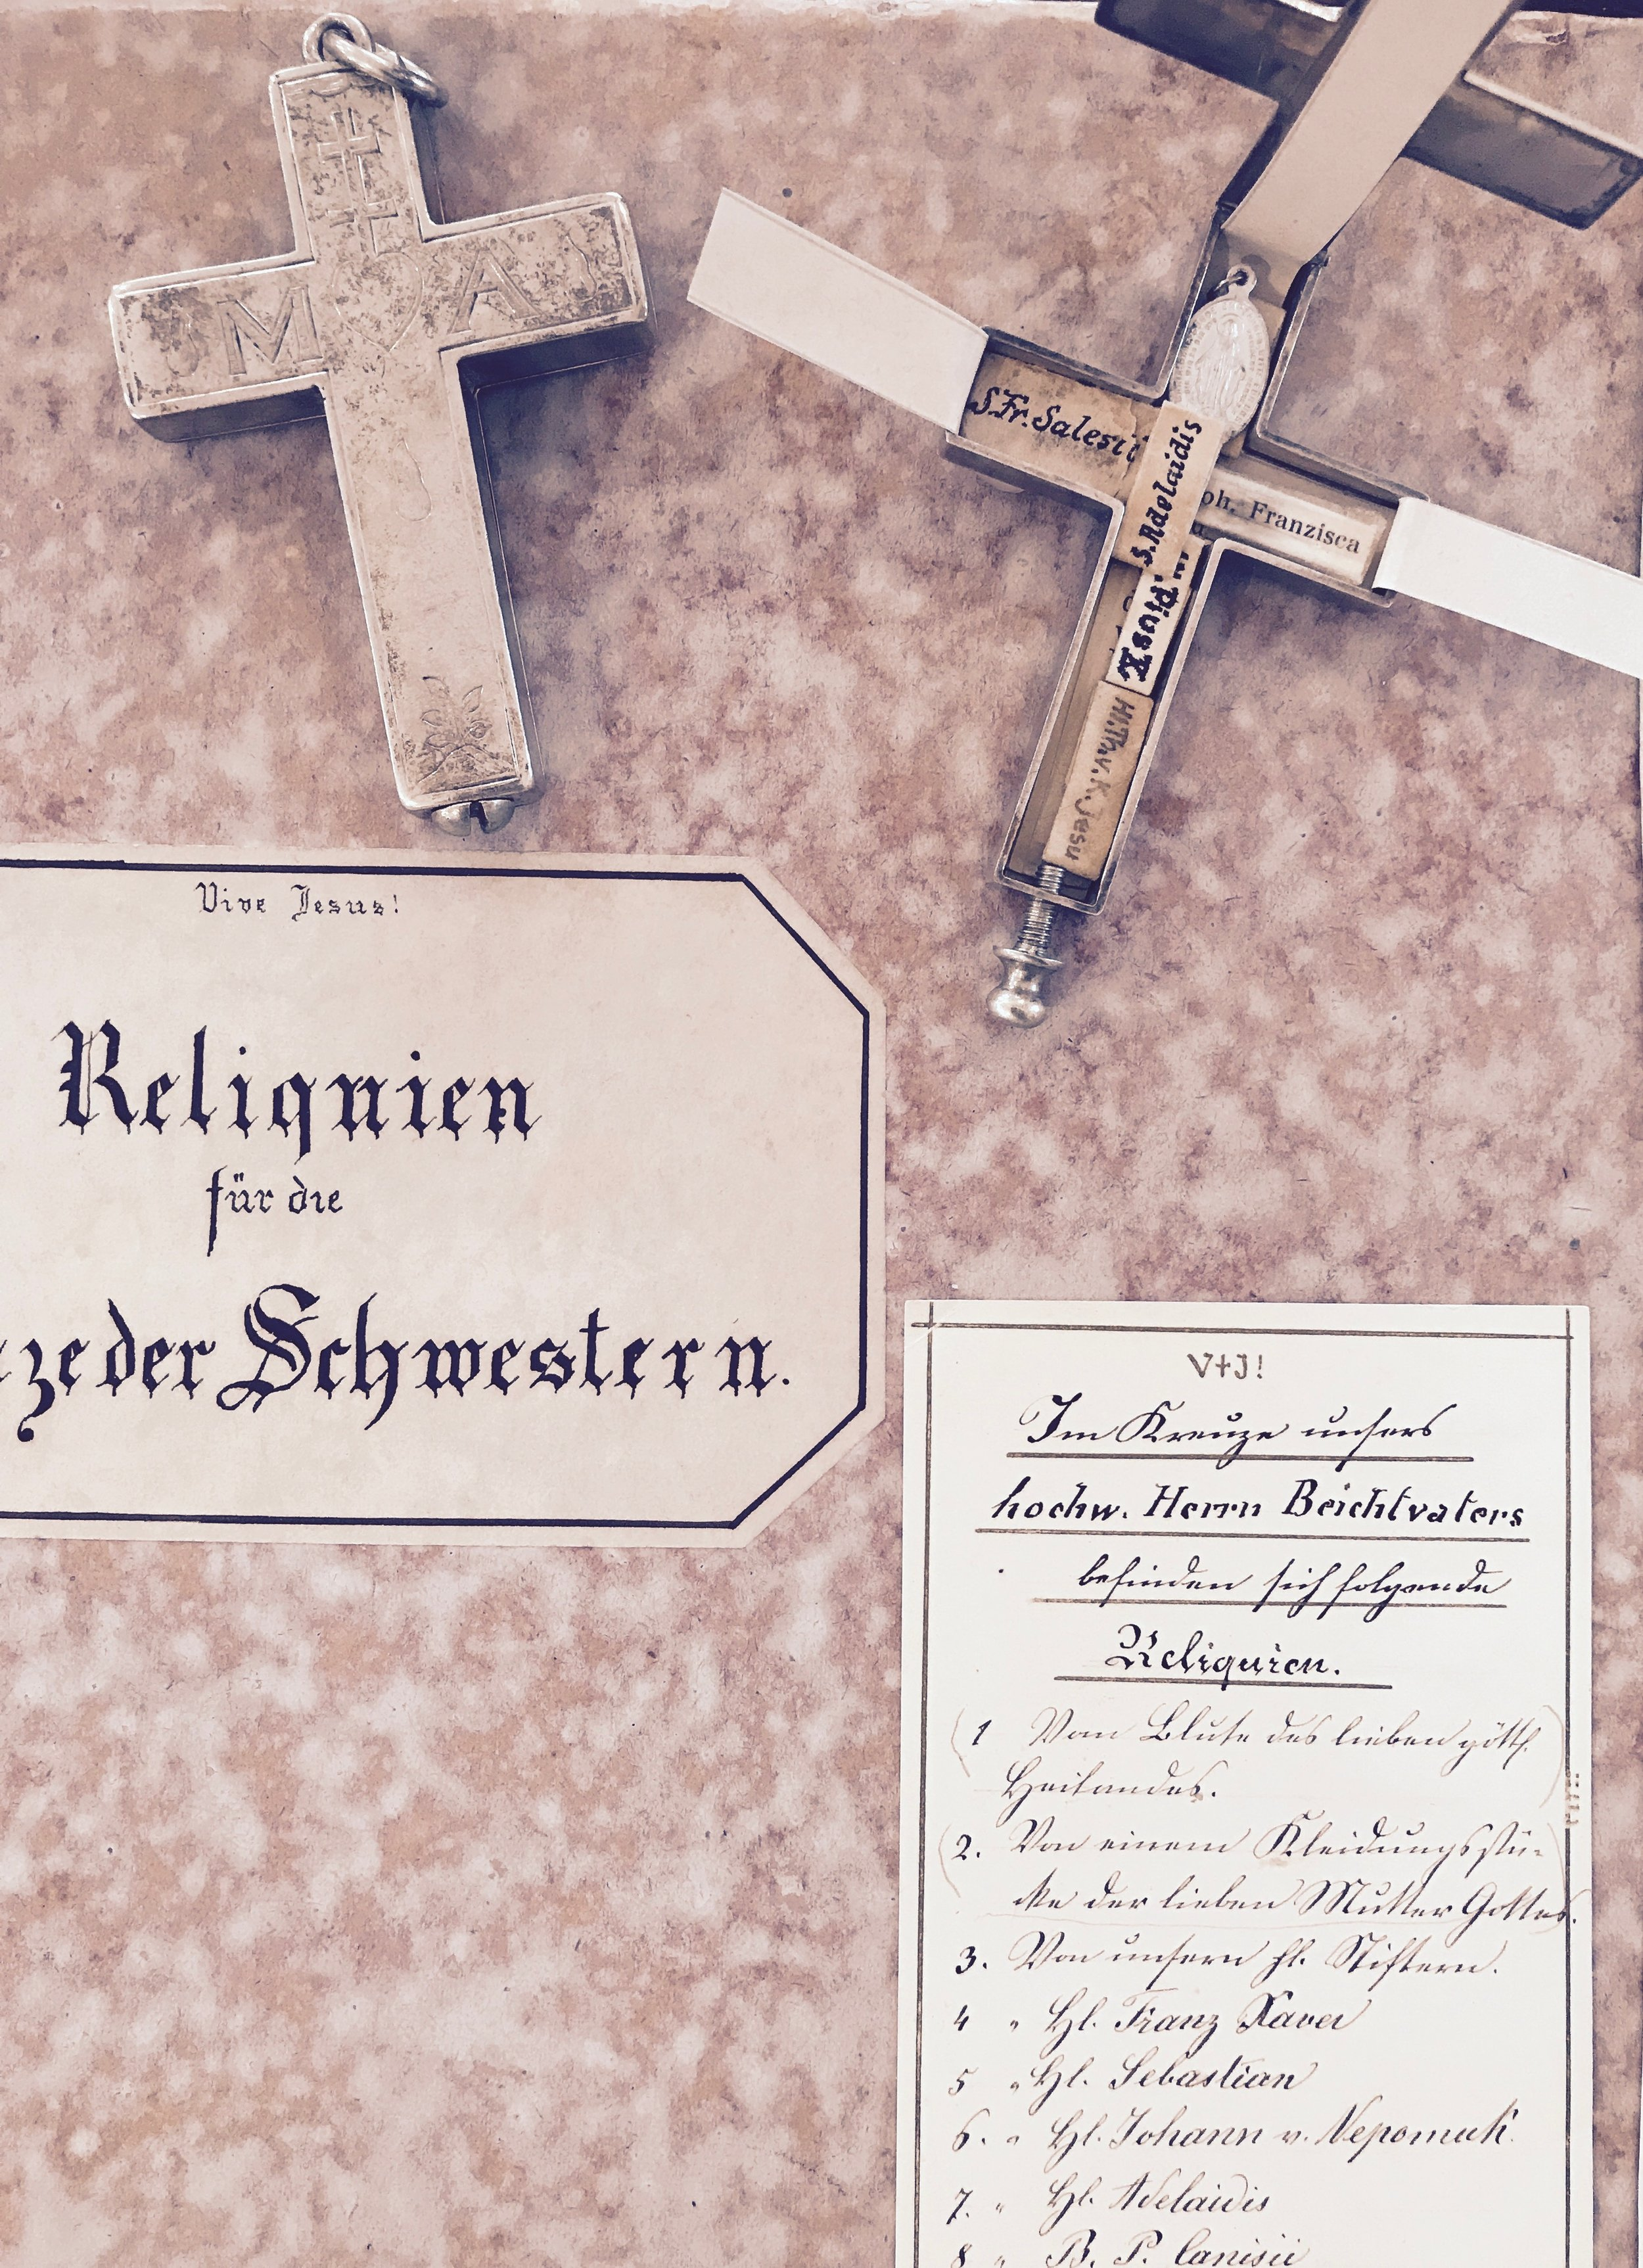 an opened and closed example of the nuns' crosses